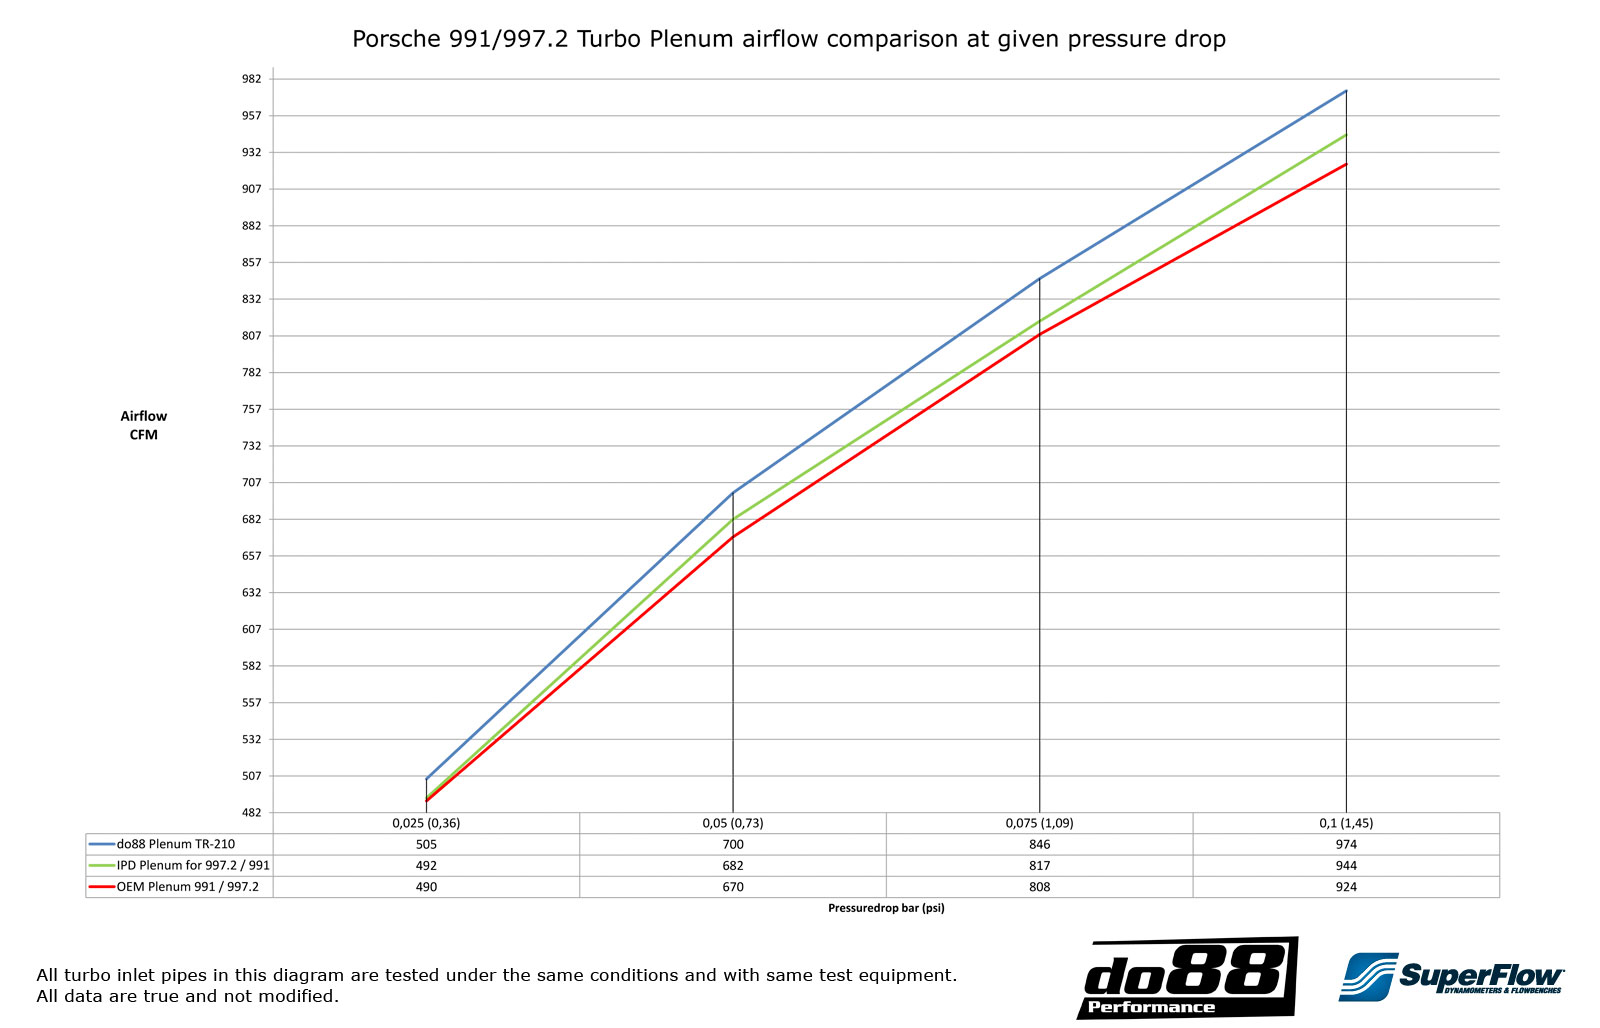 Porsche 991 Turbo 2013 Plenum From Engine Diagram This Shows The Air Flow At Different Pressure Drops Of Do88 Compared To Oem